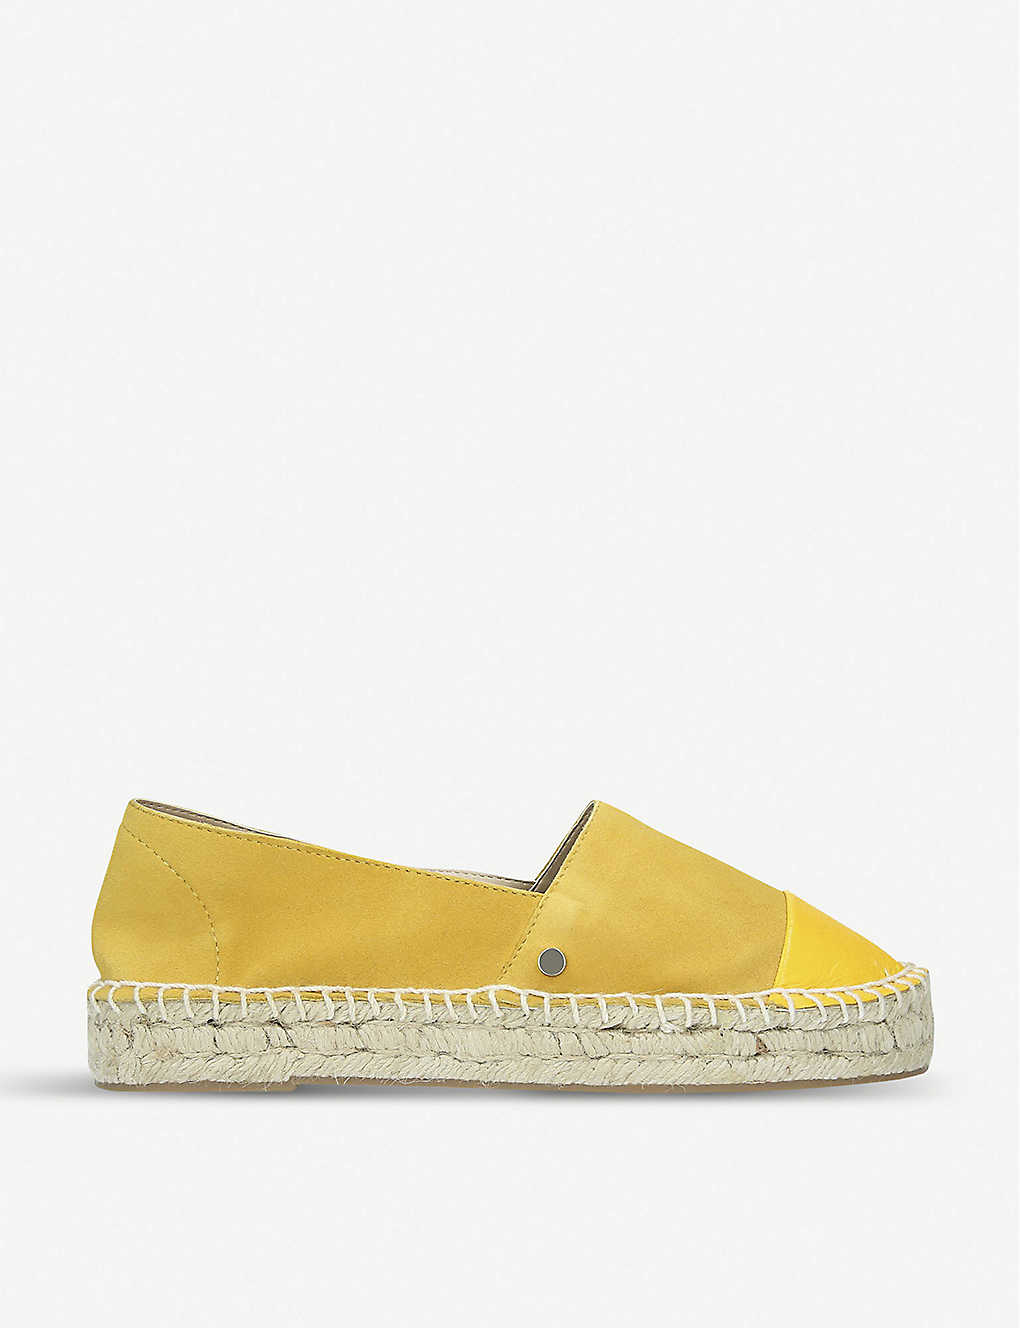 KG KURT GEIGER: Destiny leather espadrilles